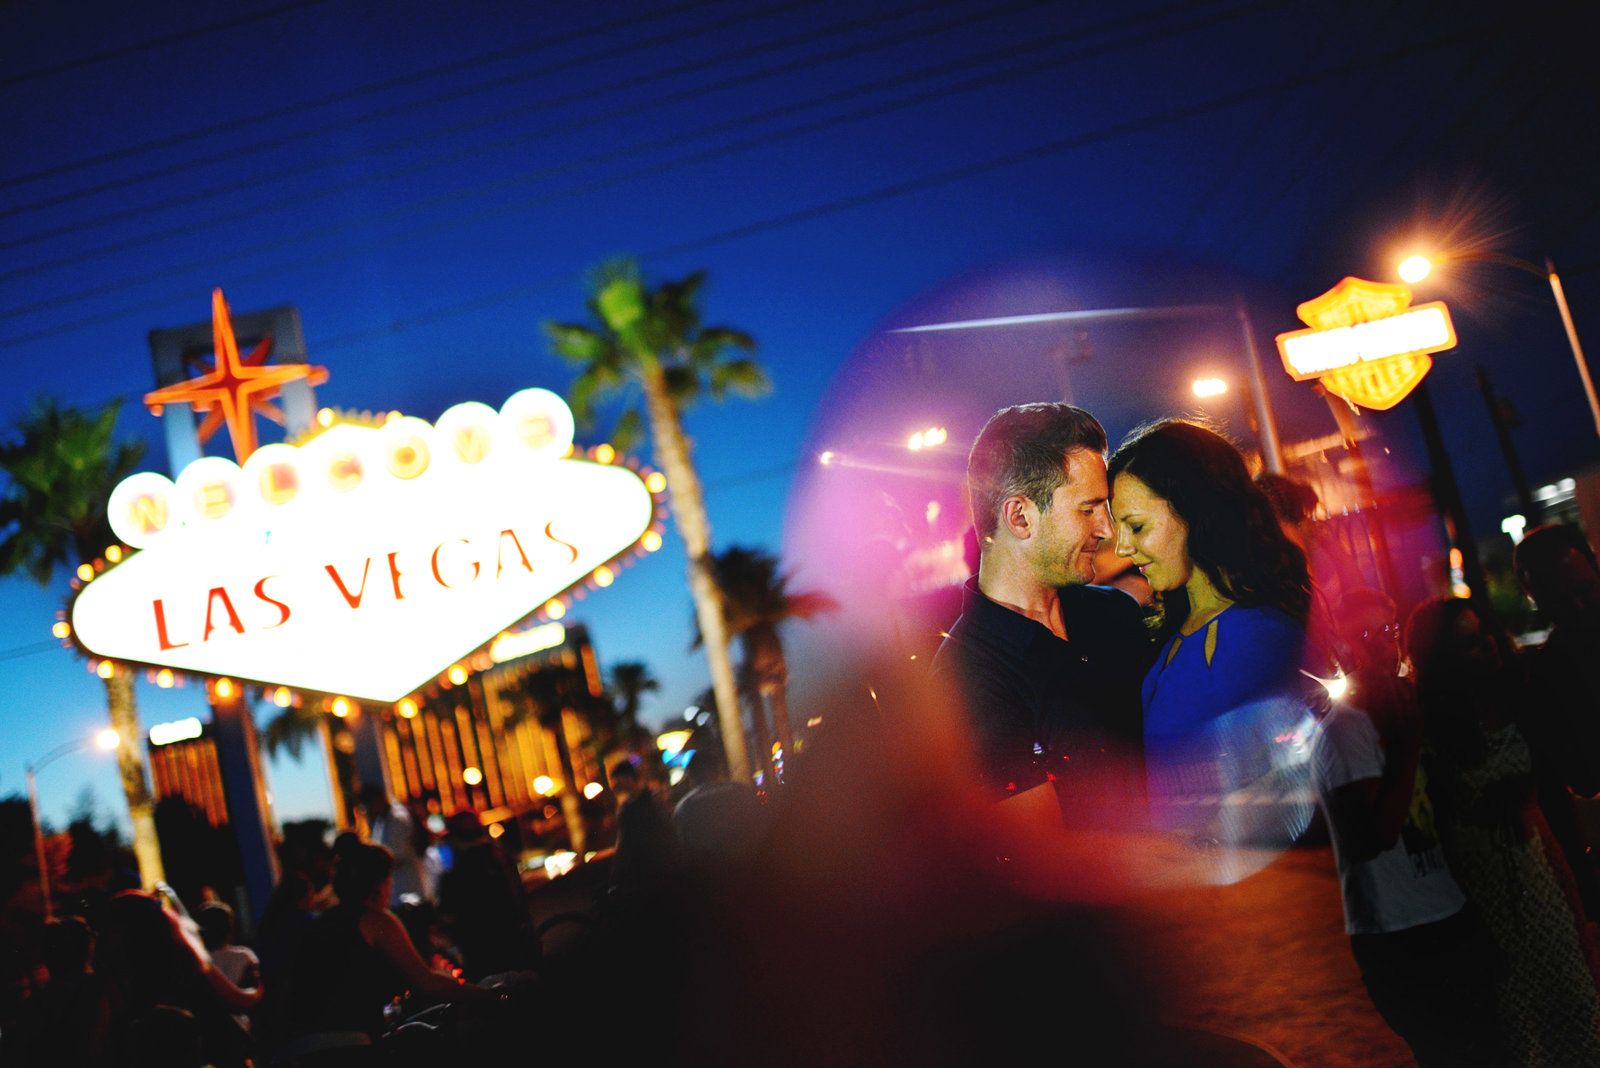 las vegas nevada destination wedding photographer bryan newfield photography 32